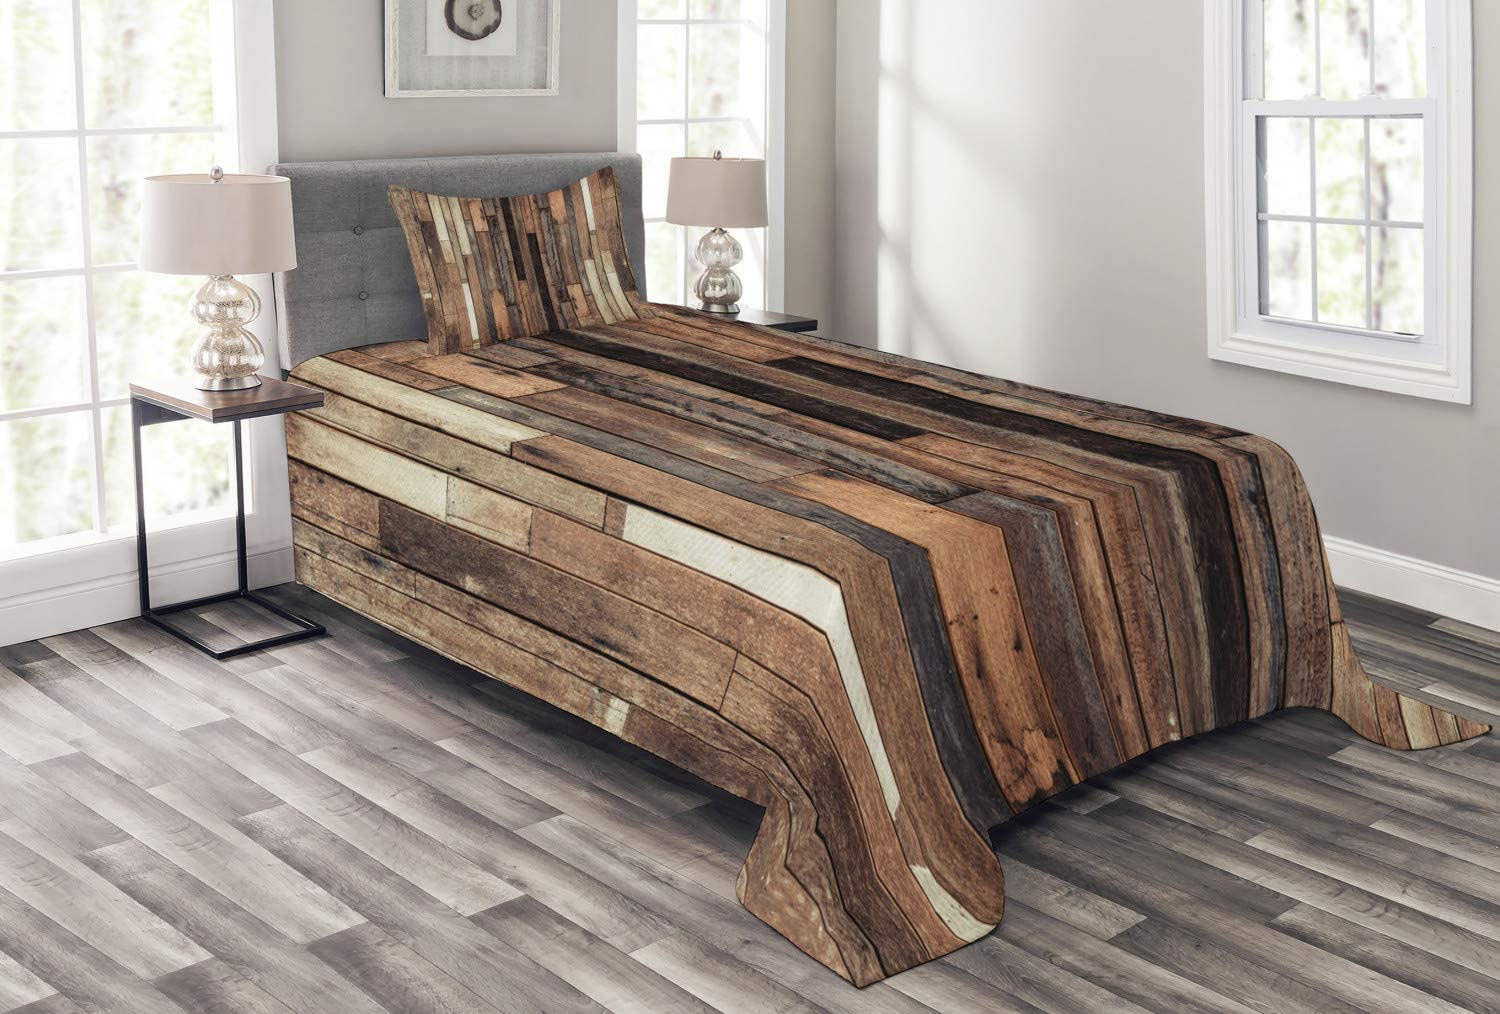 Ambesonne Wooden Bedspread Set Twin Size, Brown Old Hardwood Floor Plank Grunge Lodge Garage Loft Natural Rural Graphic Artsy Print, 2 Piece Decorative Quilted Coverlet with 1 Pillow Sham, Brown